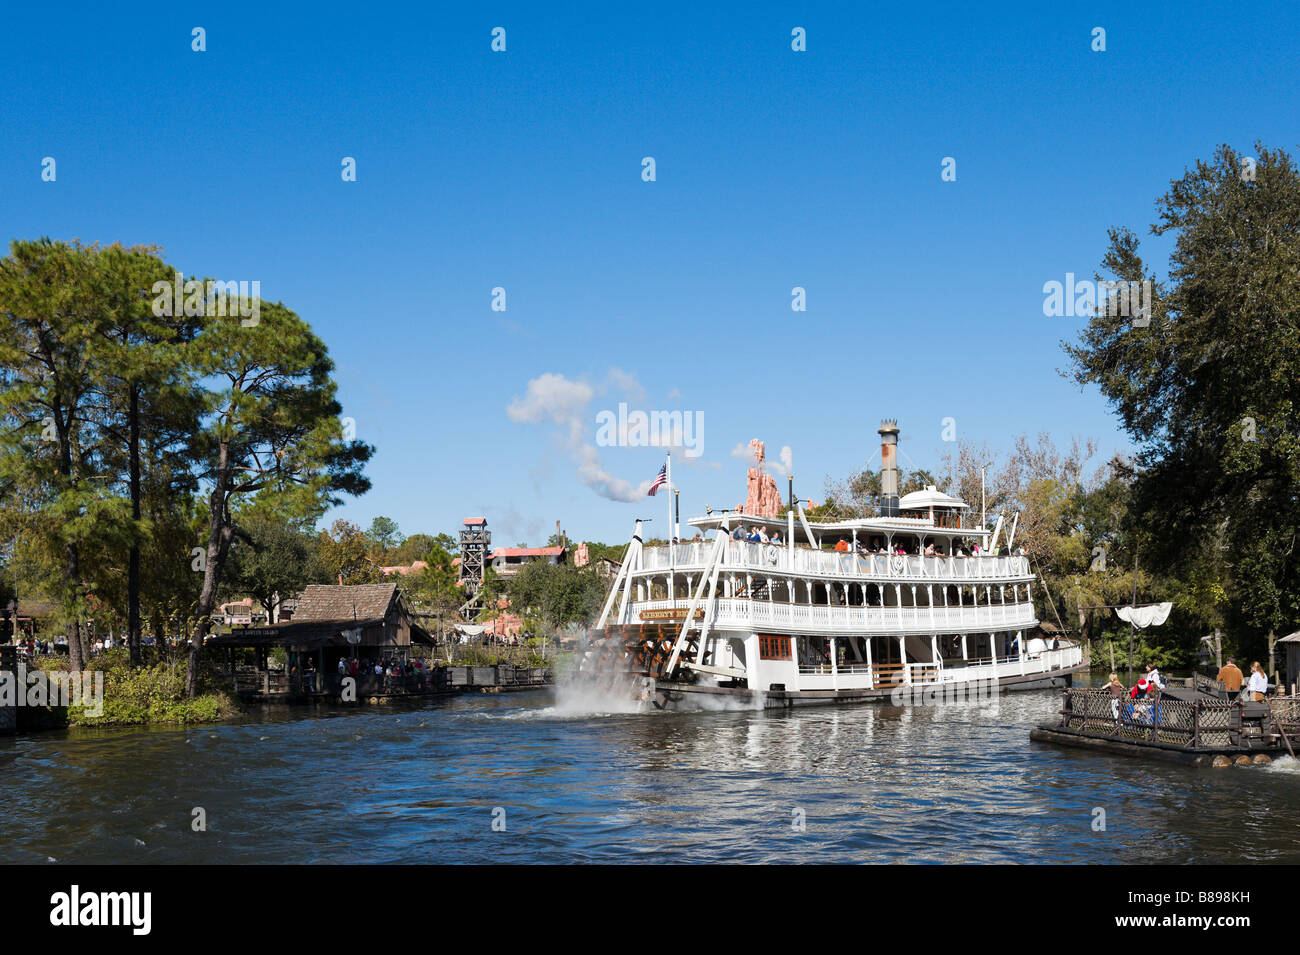 Liberty Square Riverboat in Frontierland, Magic Kingdom